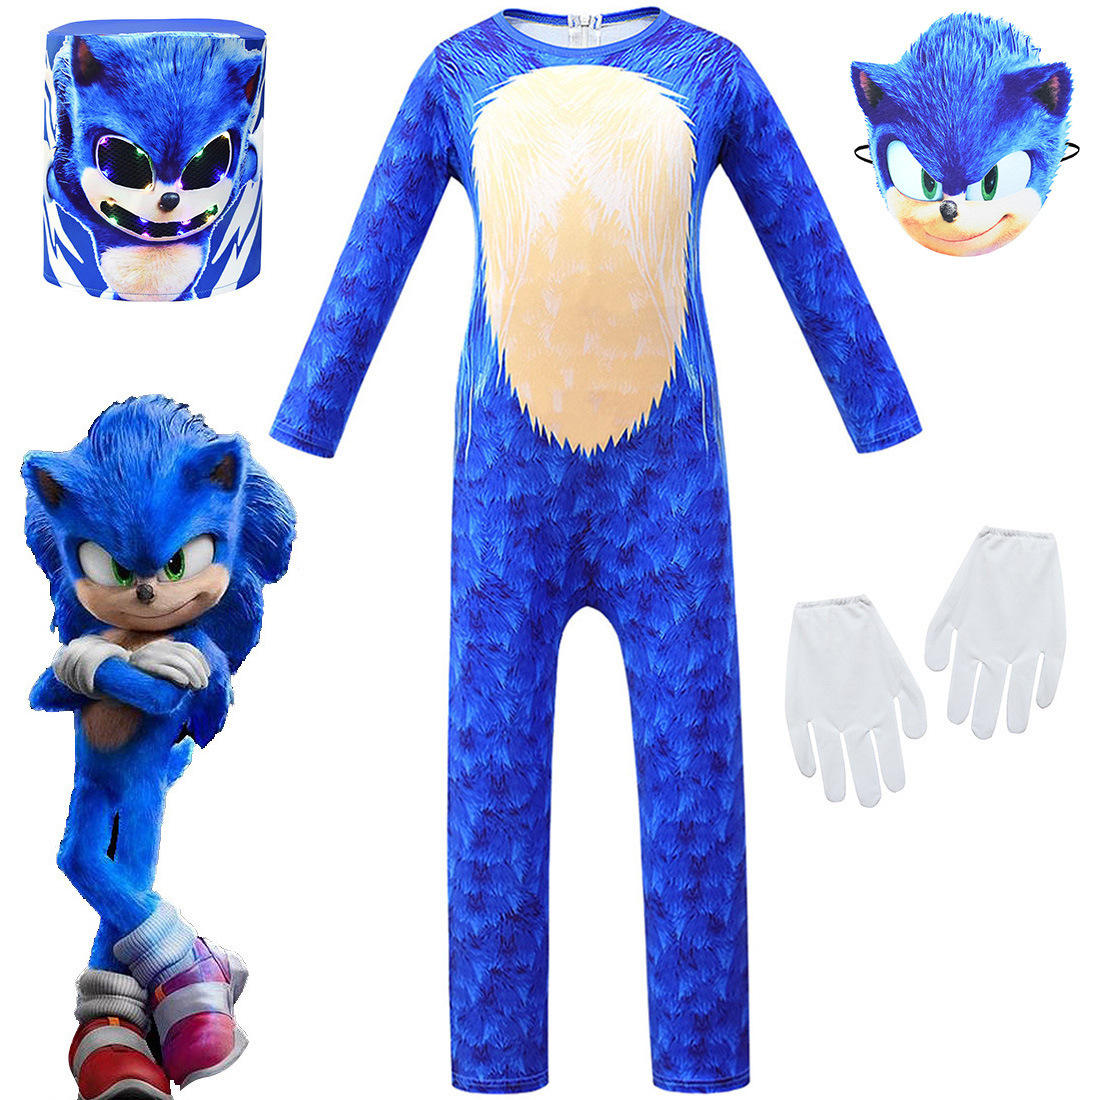 Aier Halloween Party Boys Game Sonic the Hedgehog Cosplay Costume with Mask